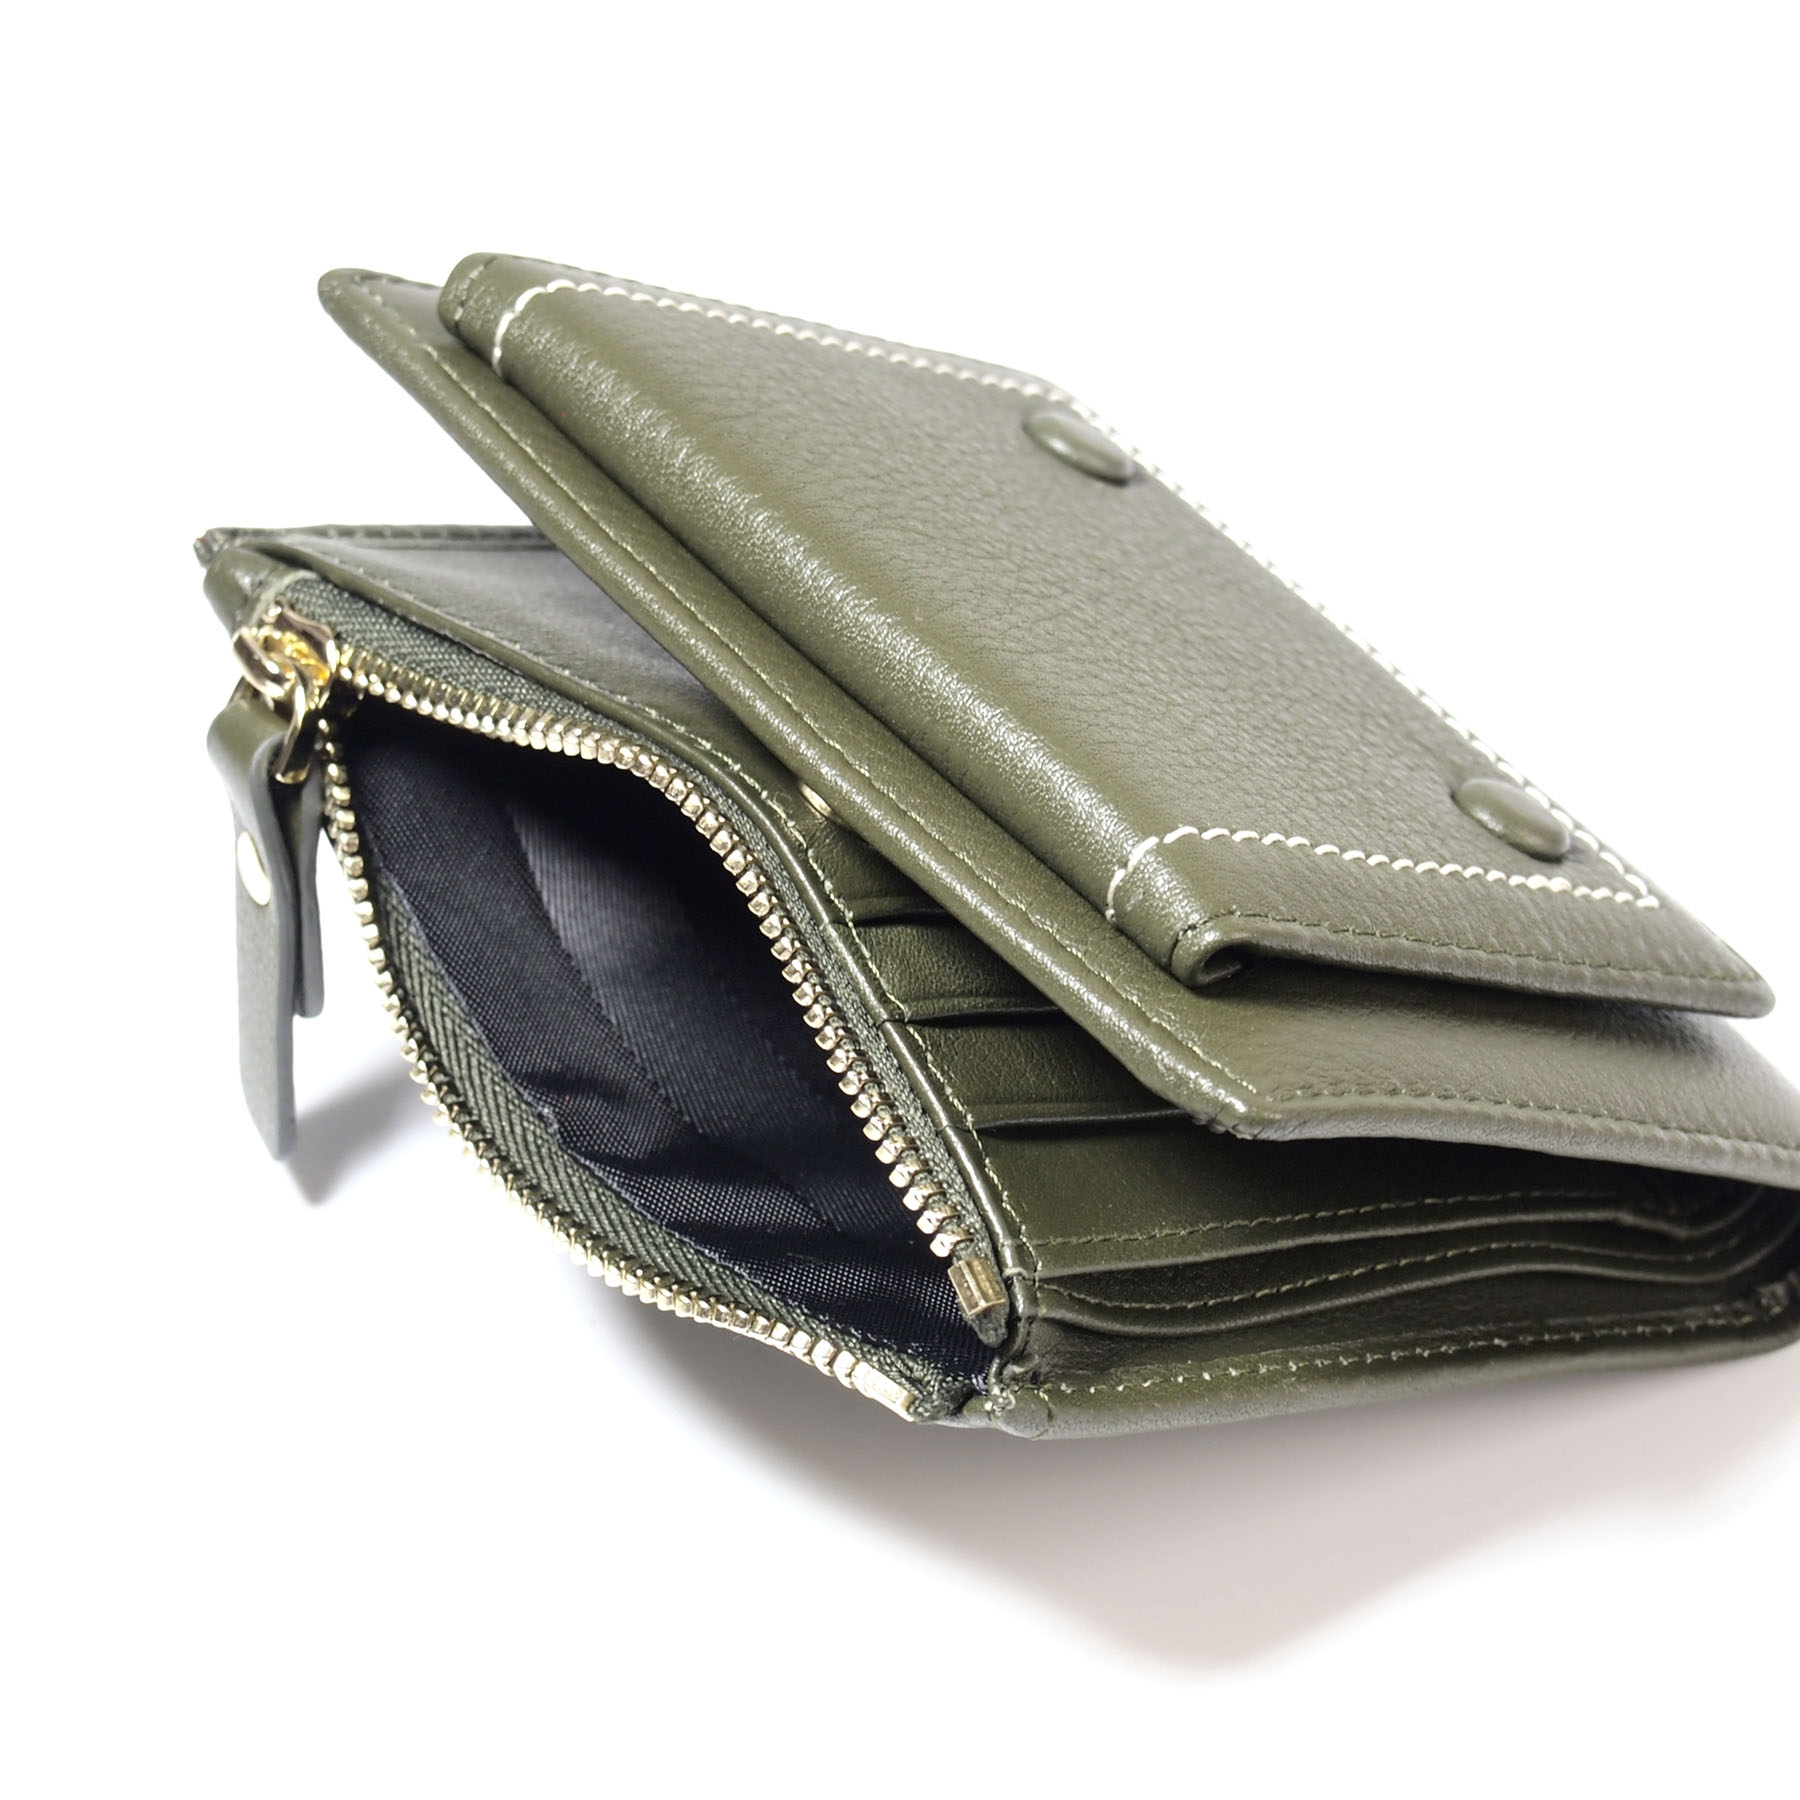 Butterfield Rumi Wallet Snap-top View